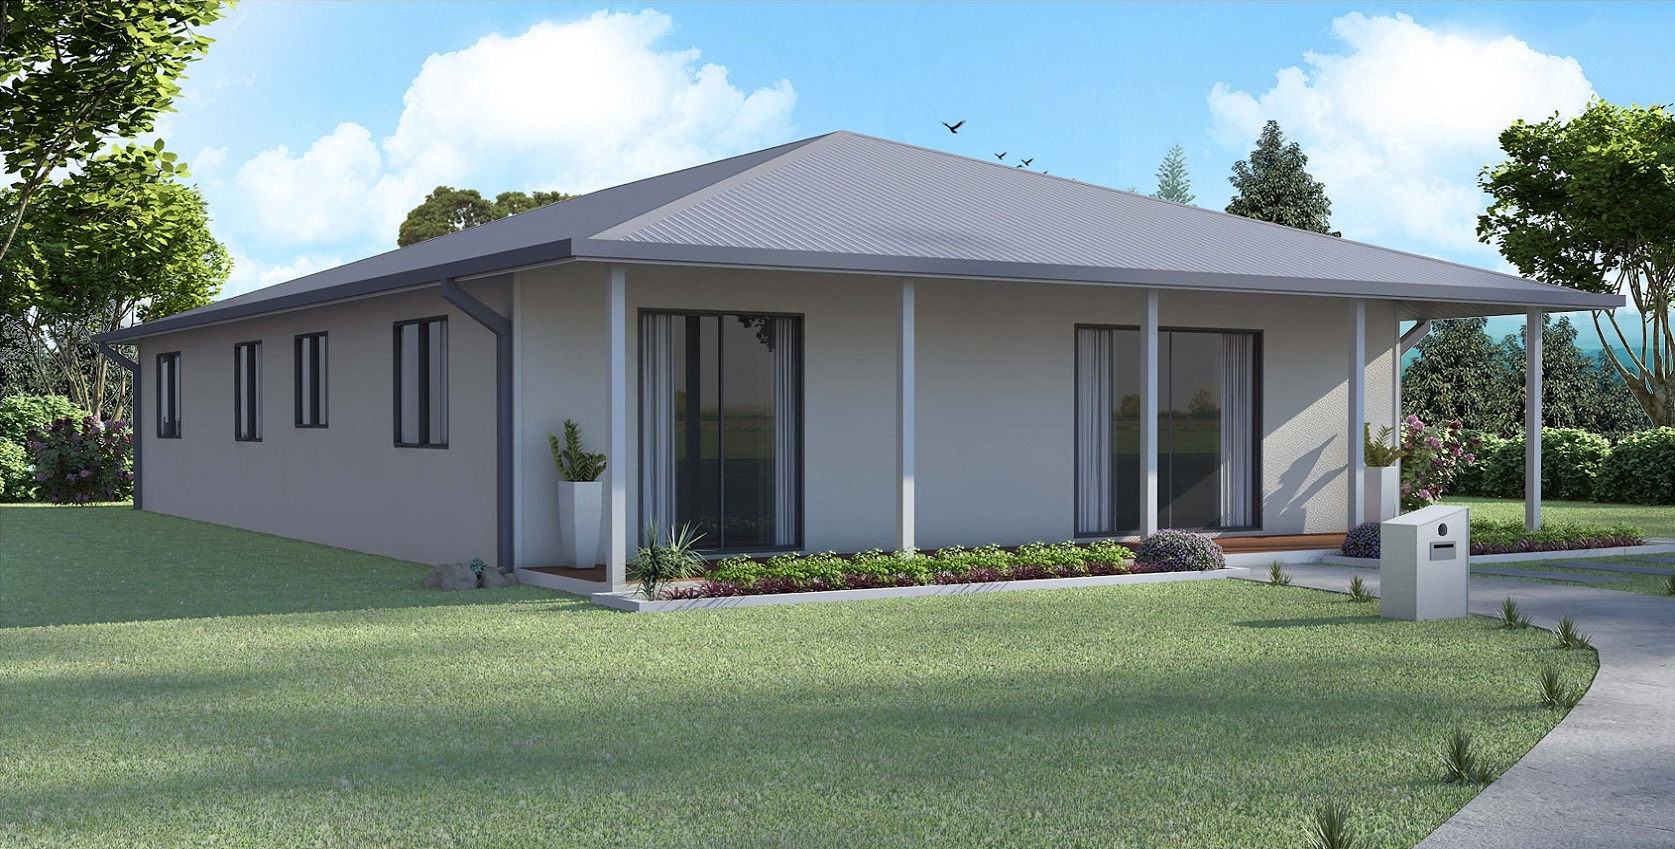 Final components wholesale homes and sheds for 5 bedroom kit homes